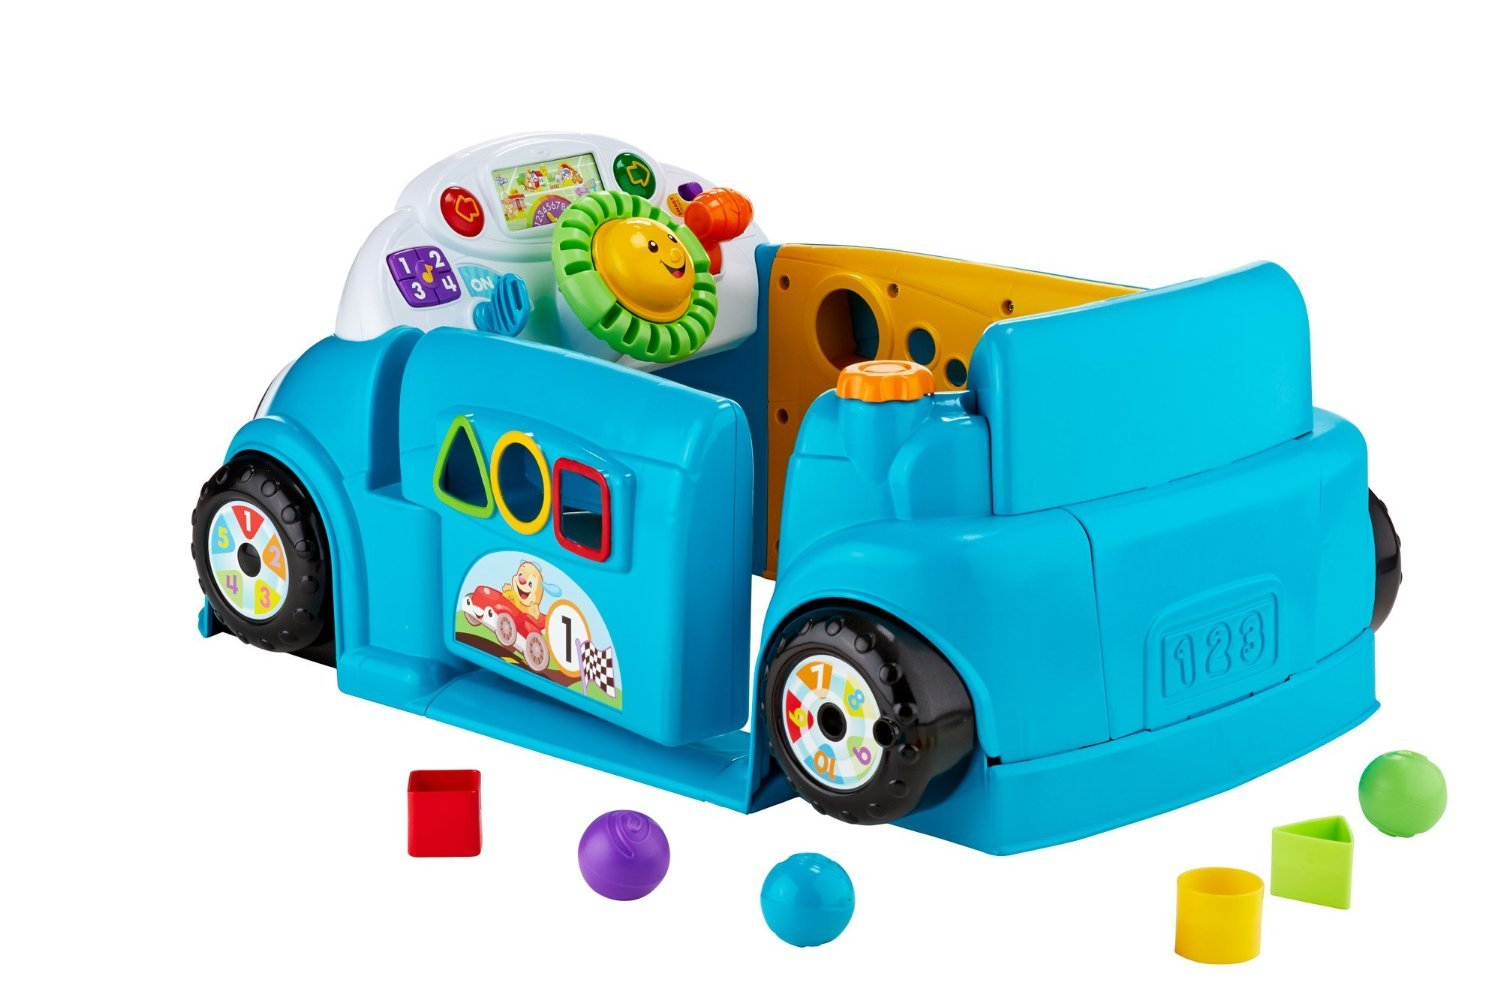 Fisher-Price Laugh & Learn Smart Stages Crawl Around Car, Blue by Fisher-Price (Image #12)